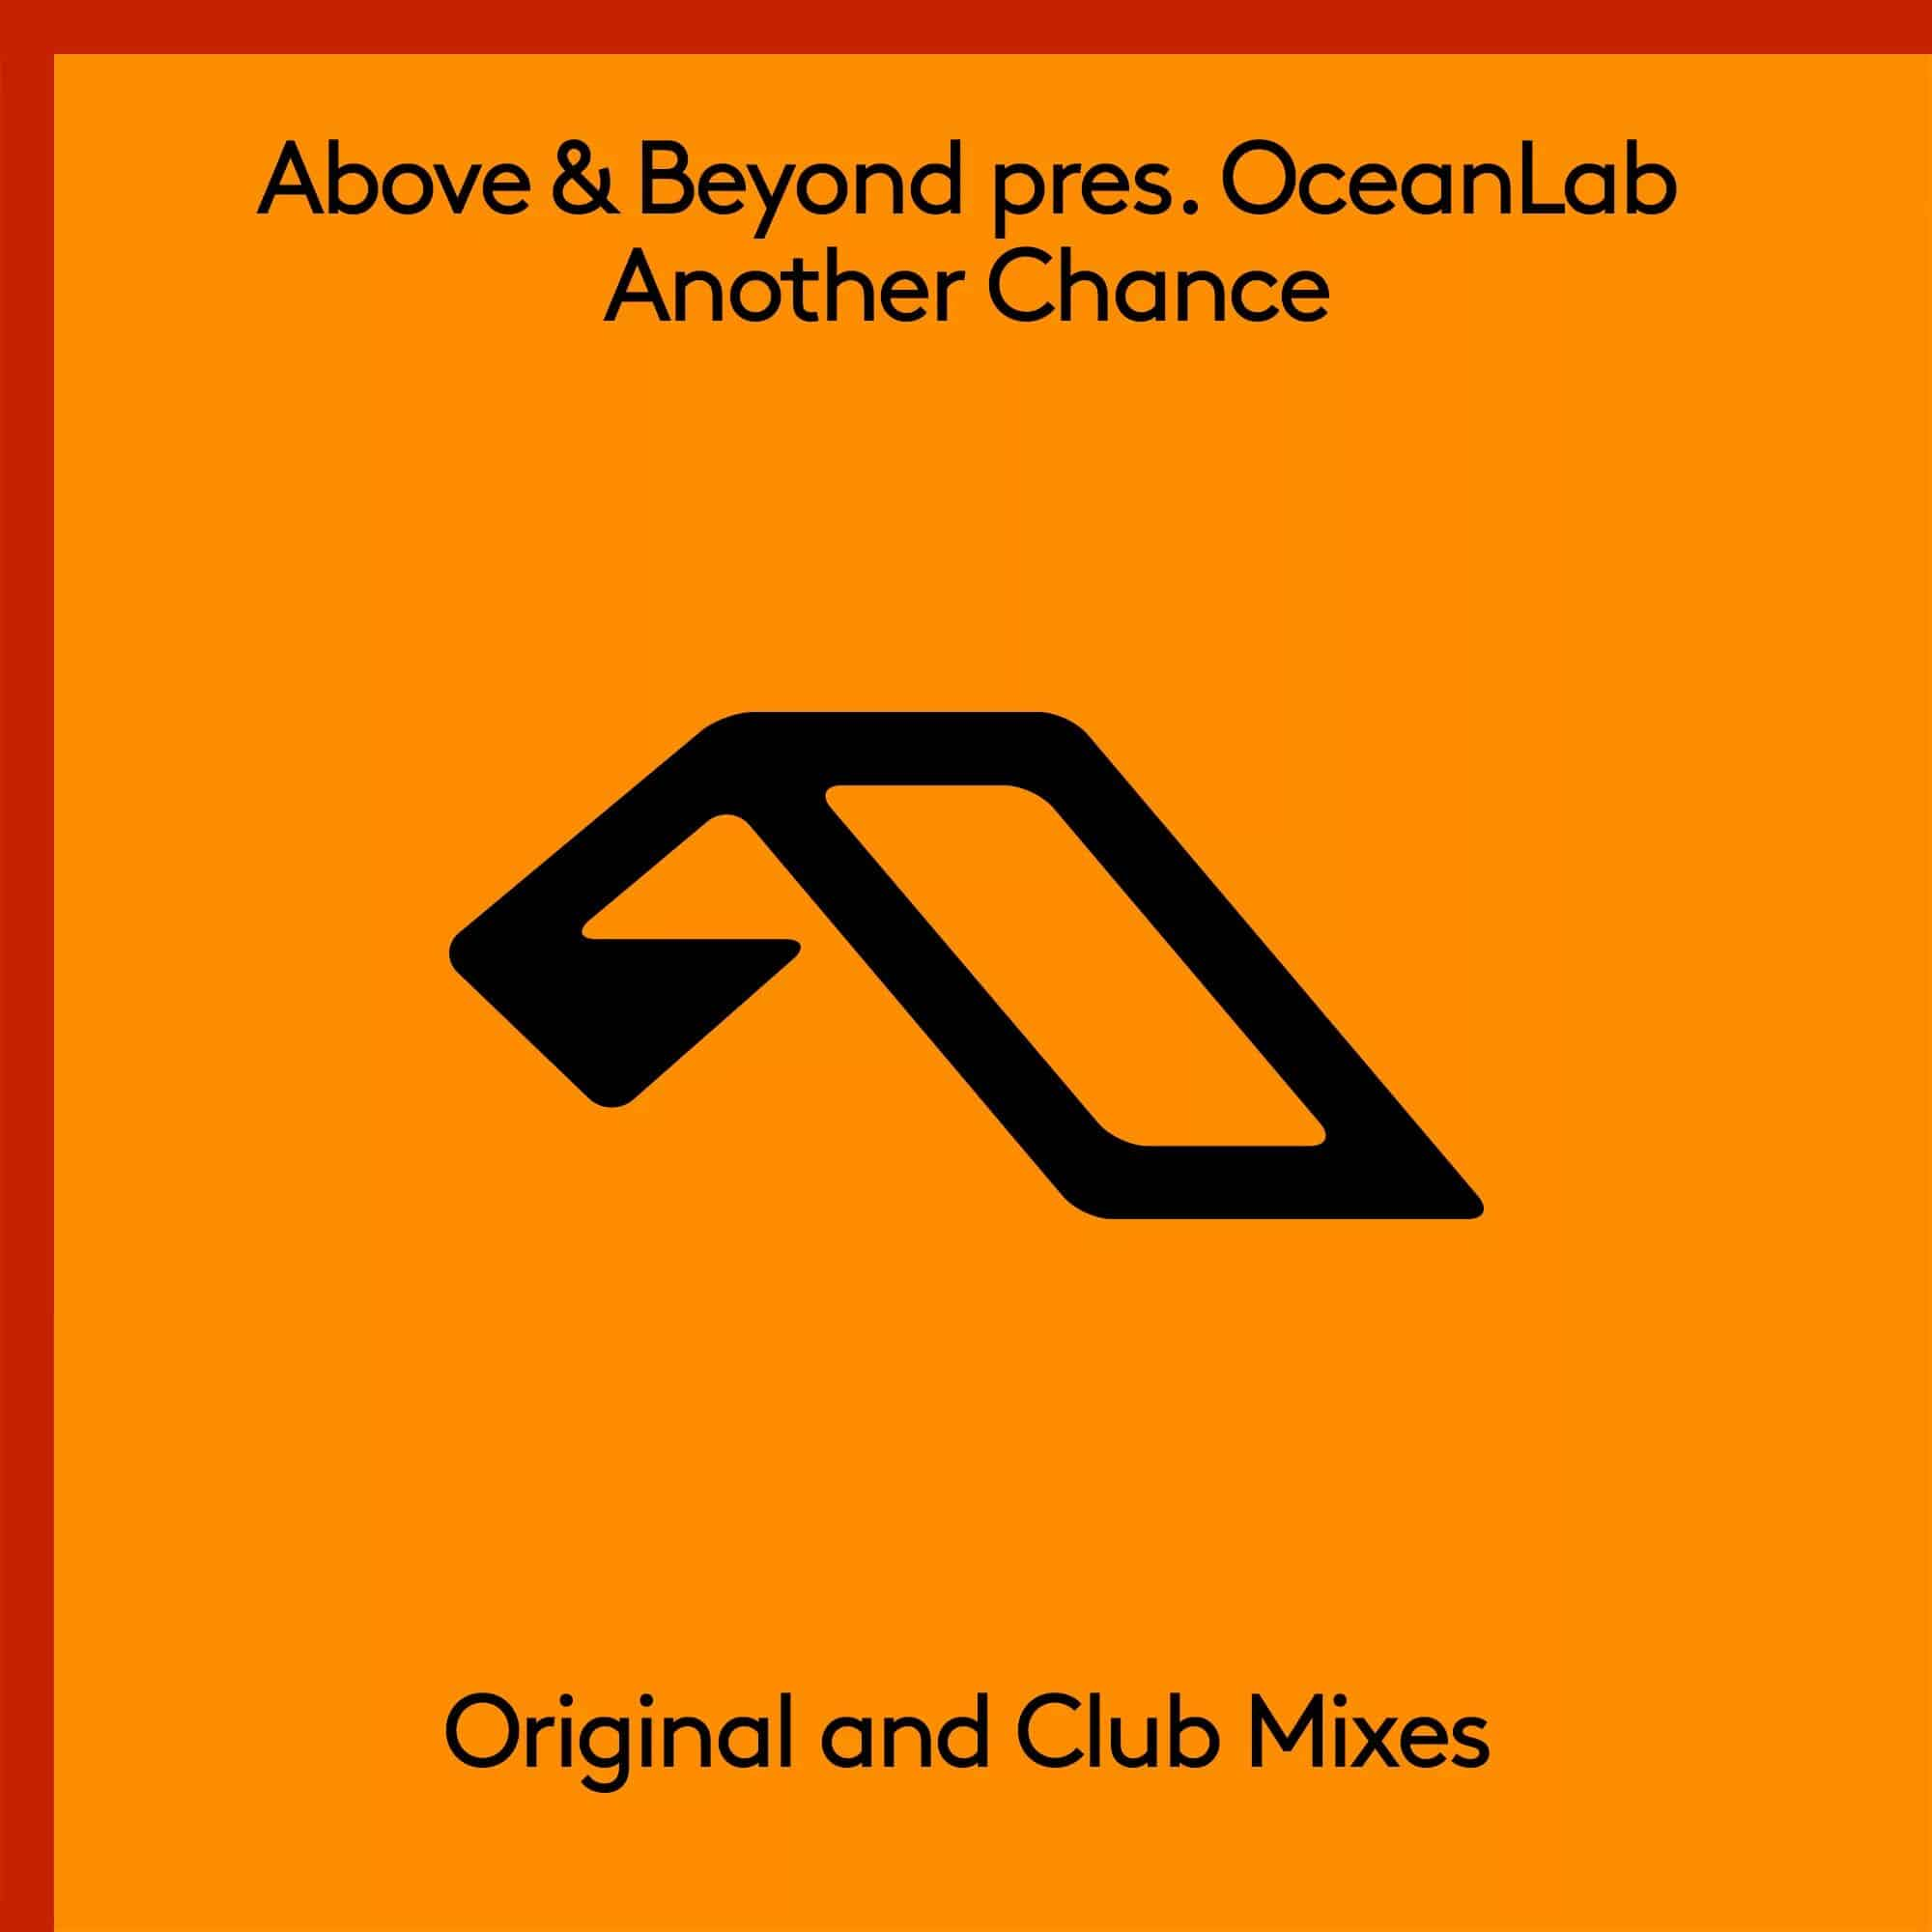 Above & Beyond pres. OceanLab - Another Chance